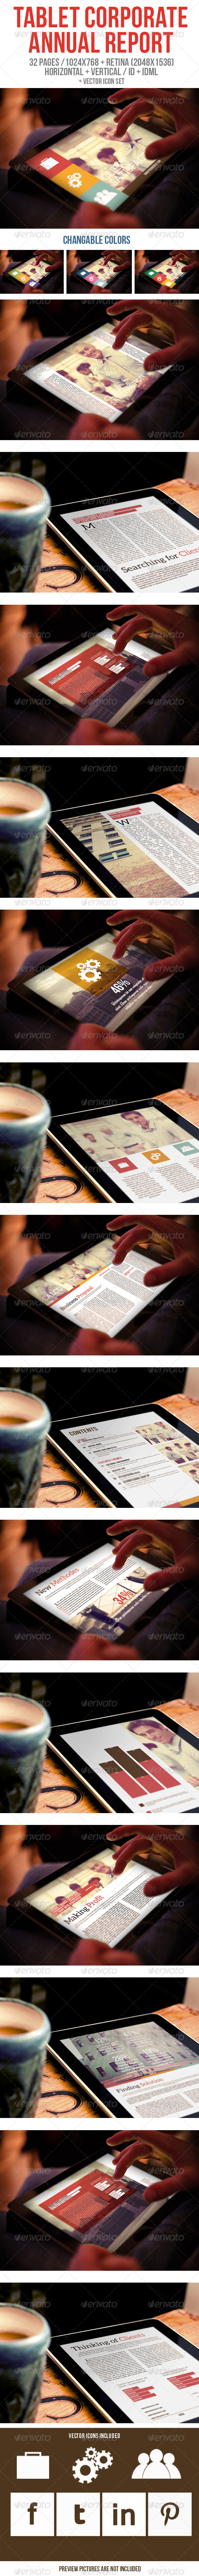 iPad & Tablet Corporate Annual Report